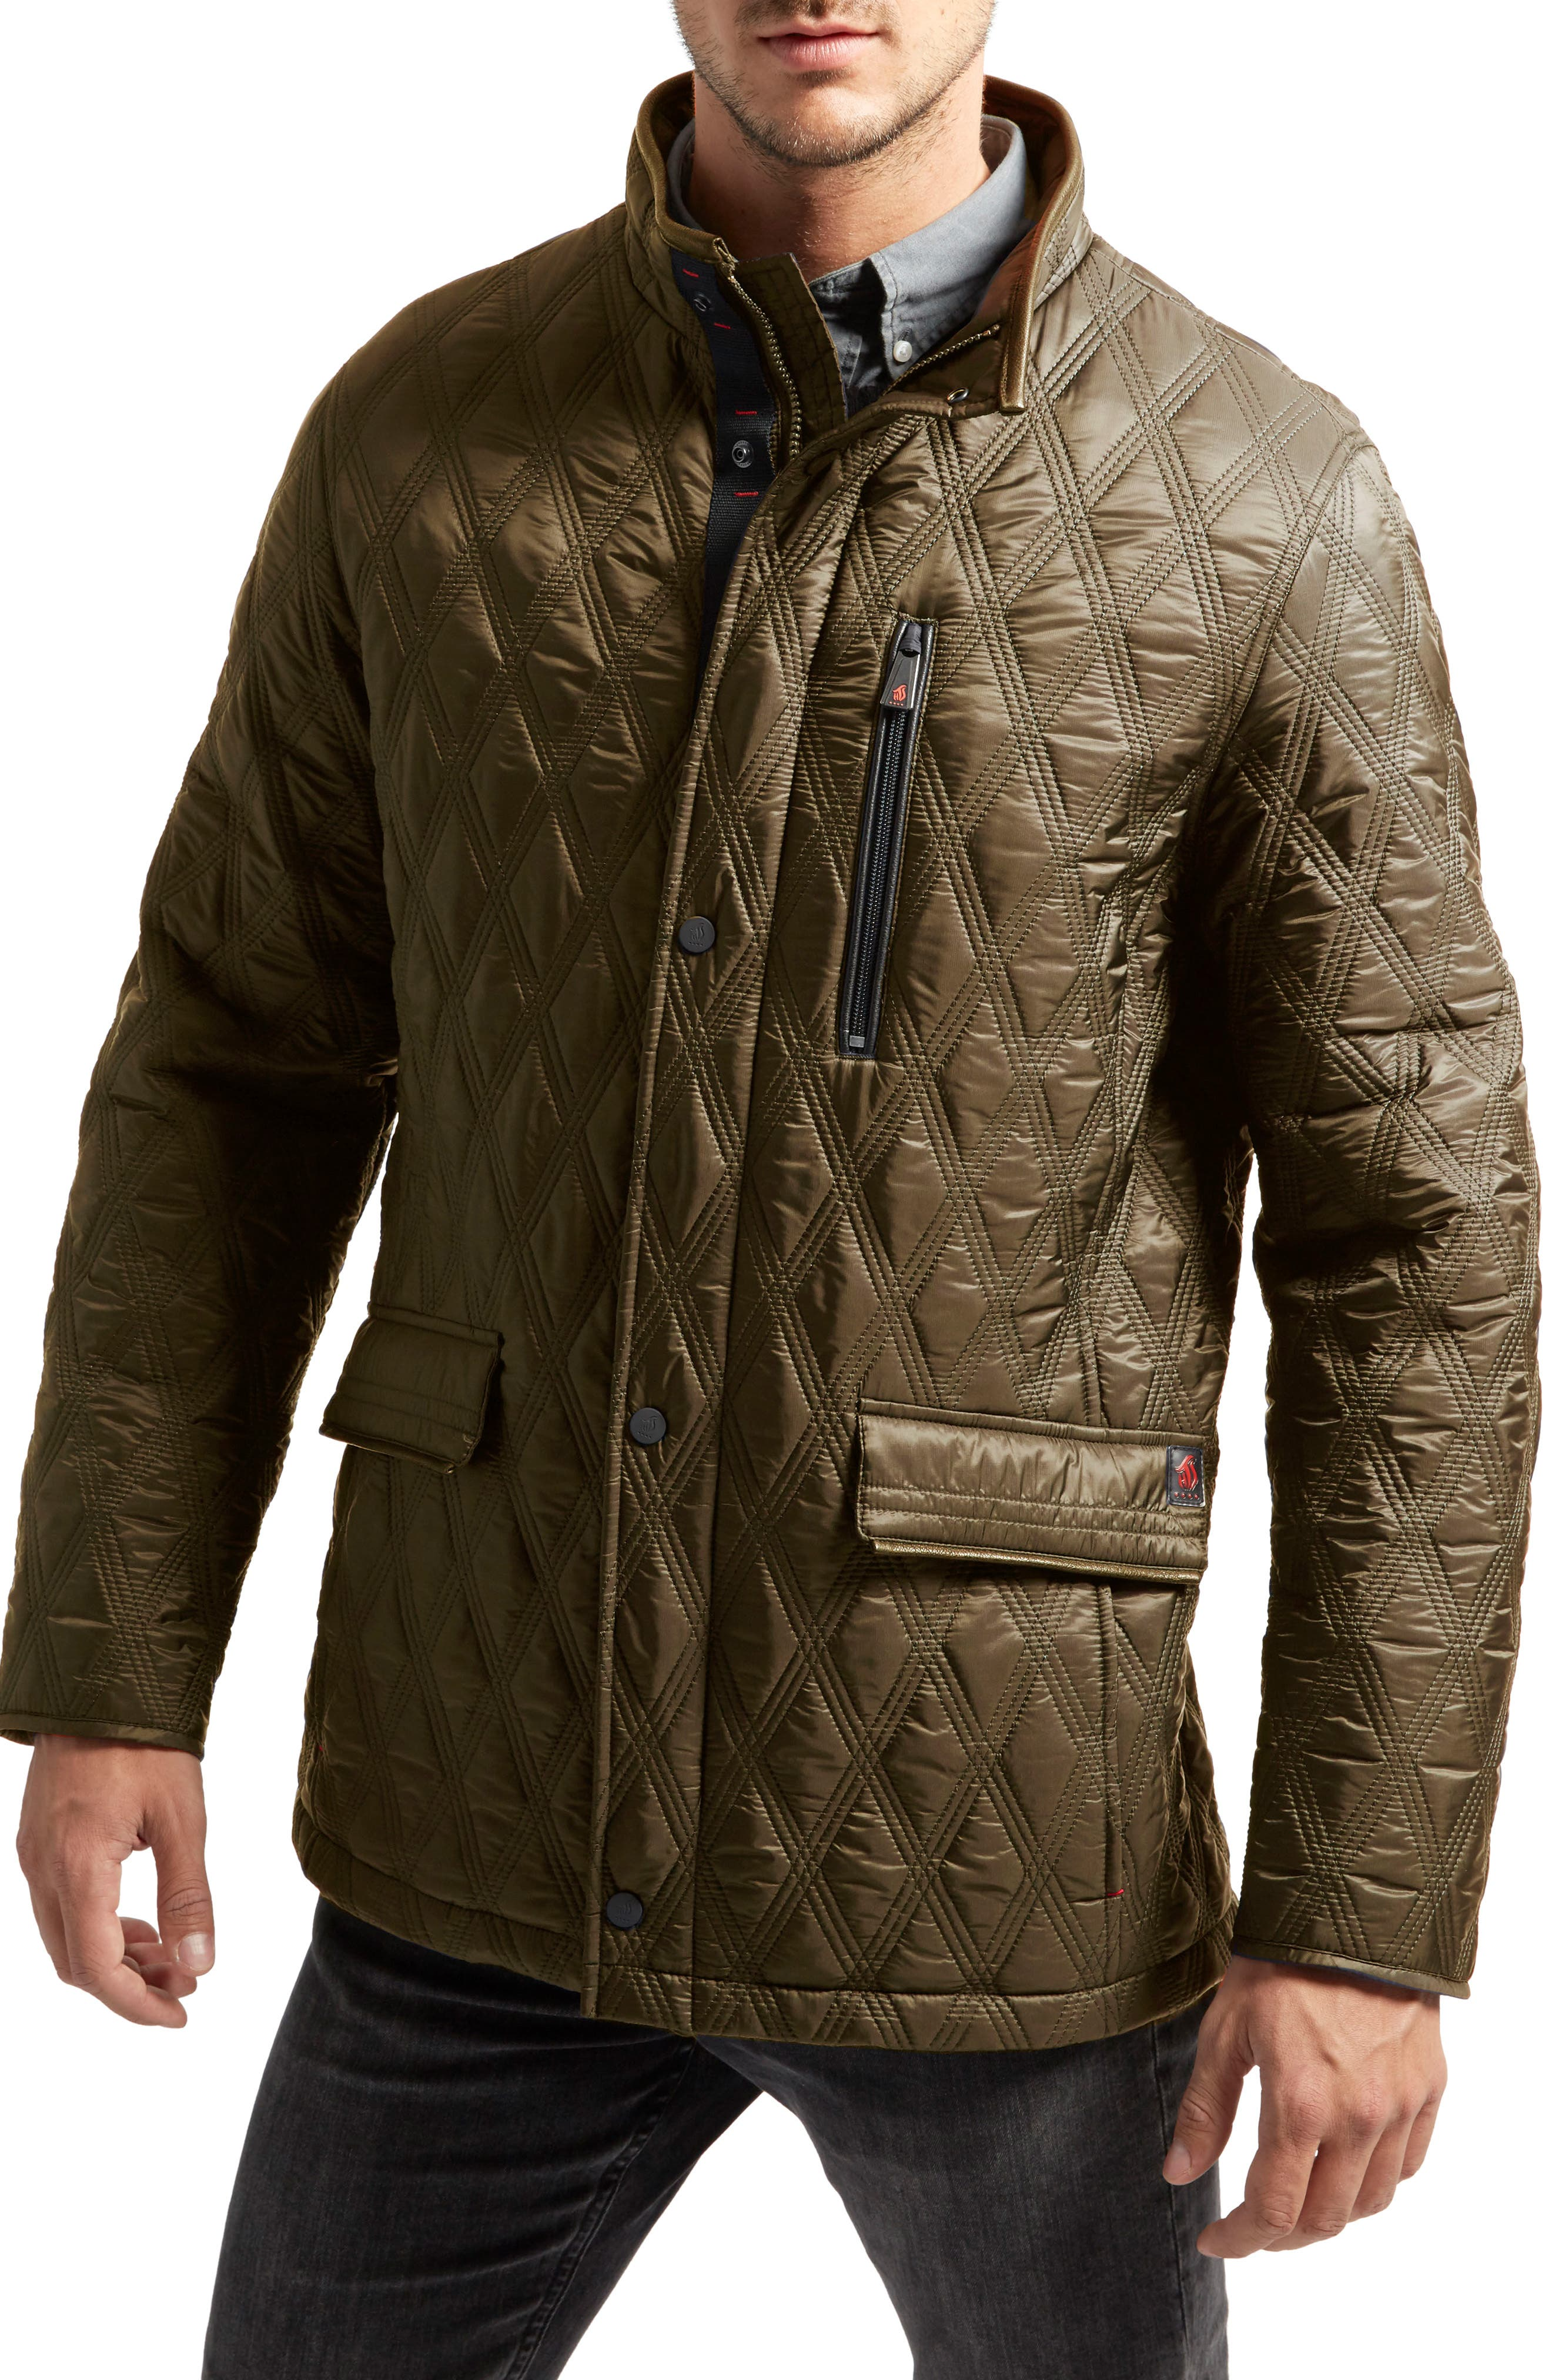 Prichard Triple Stitch Quilted Heat System Jacket,                             Main thumbnail 1, color,                             339